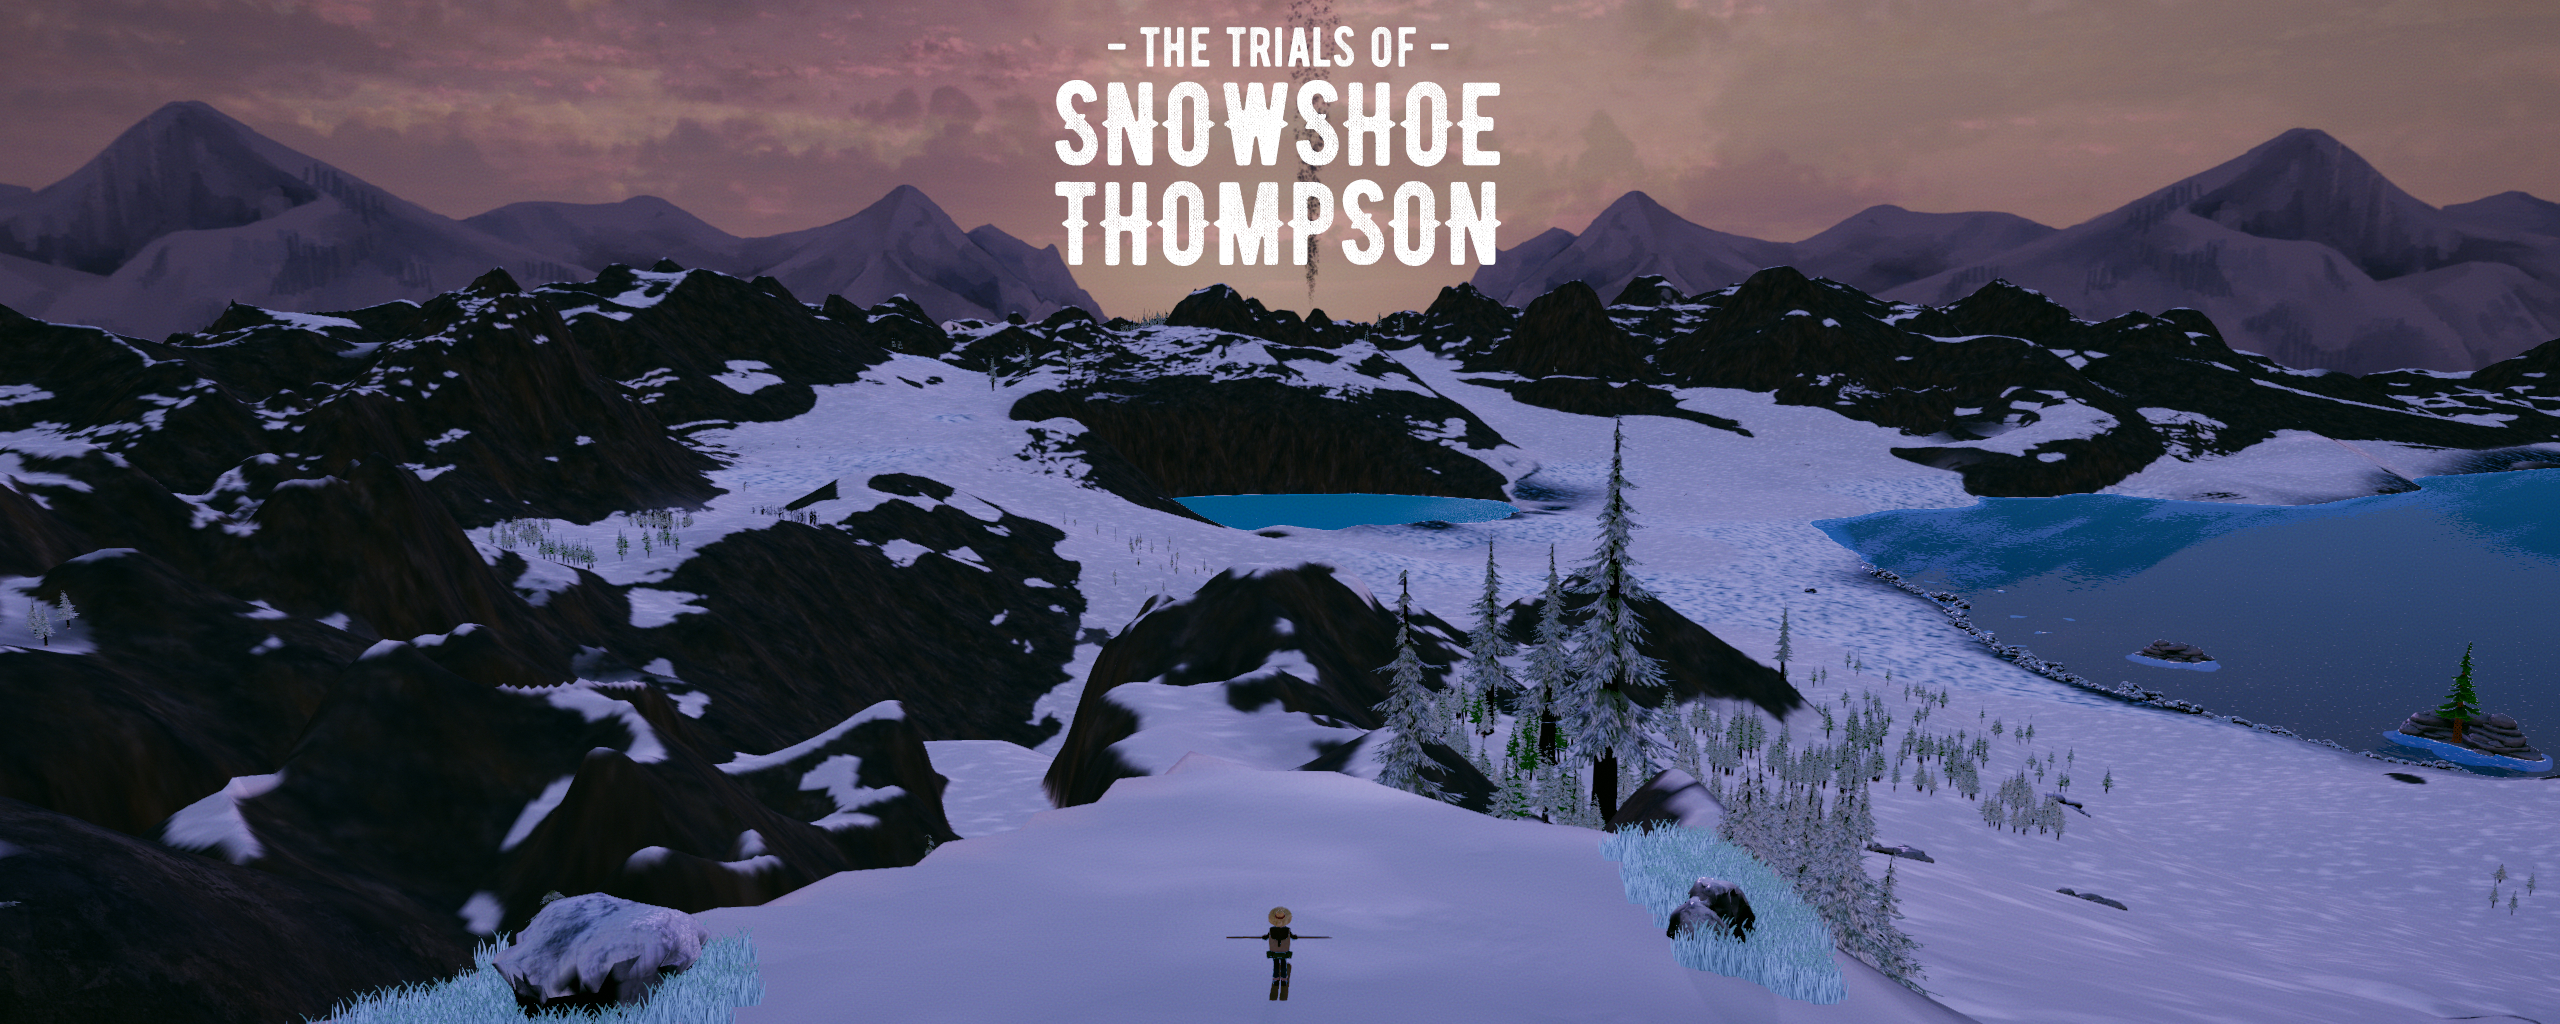 The Trials of Snowshoe Thompson